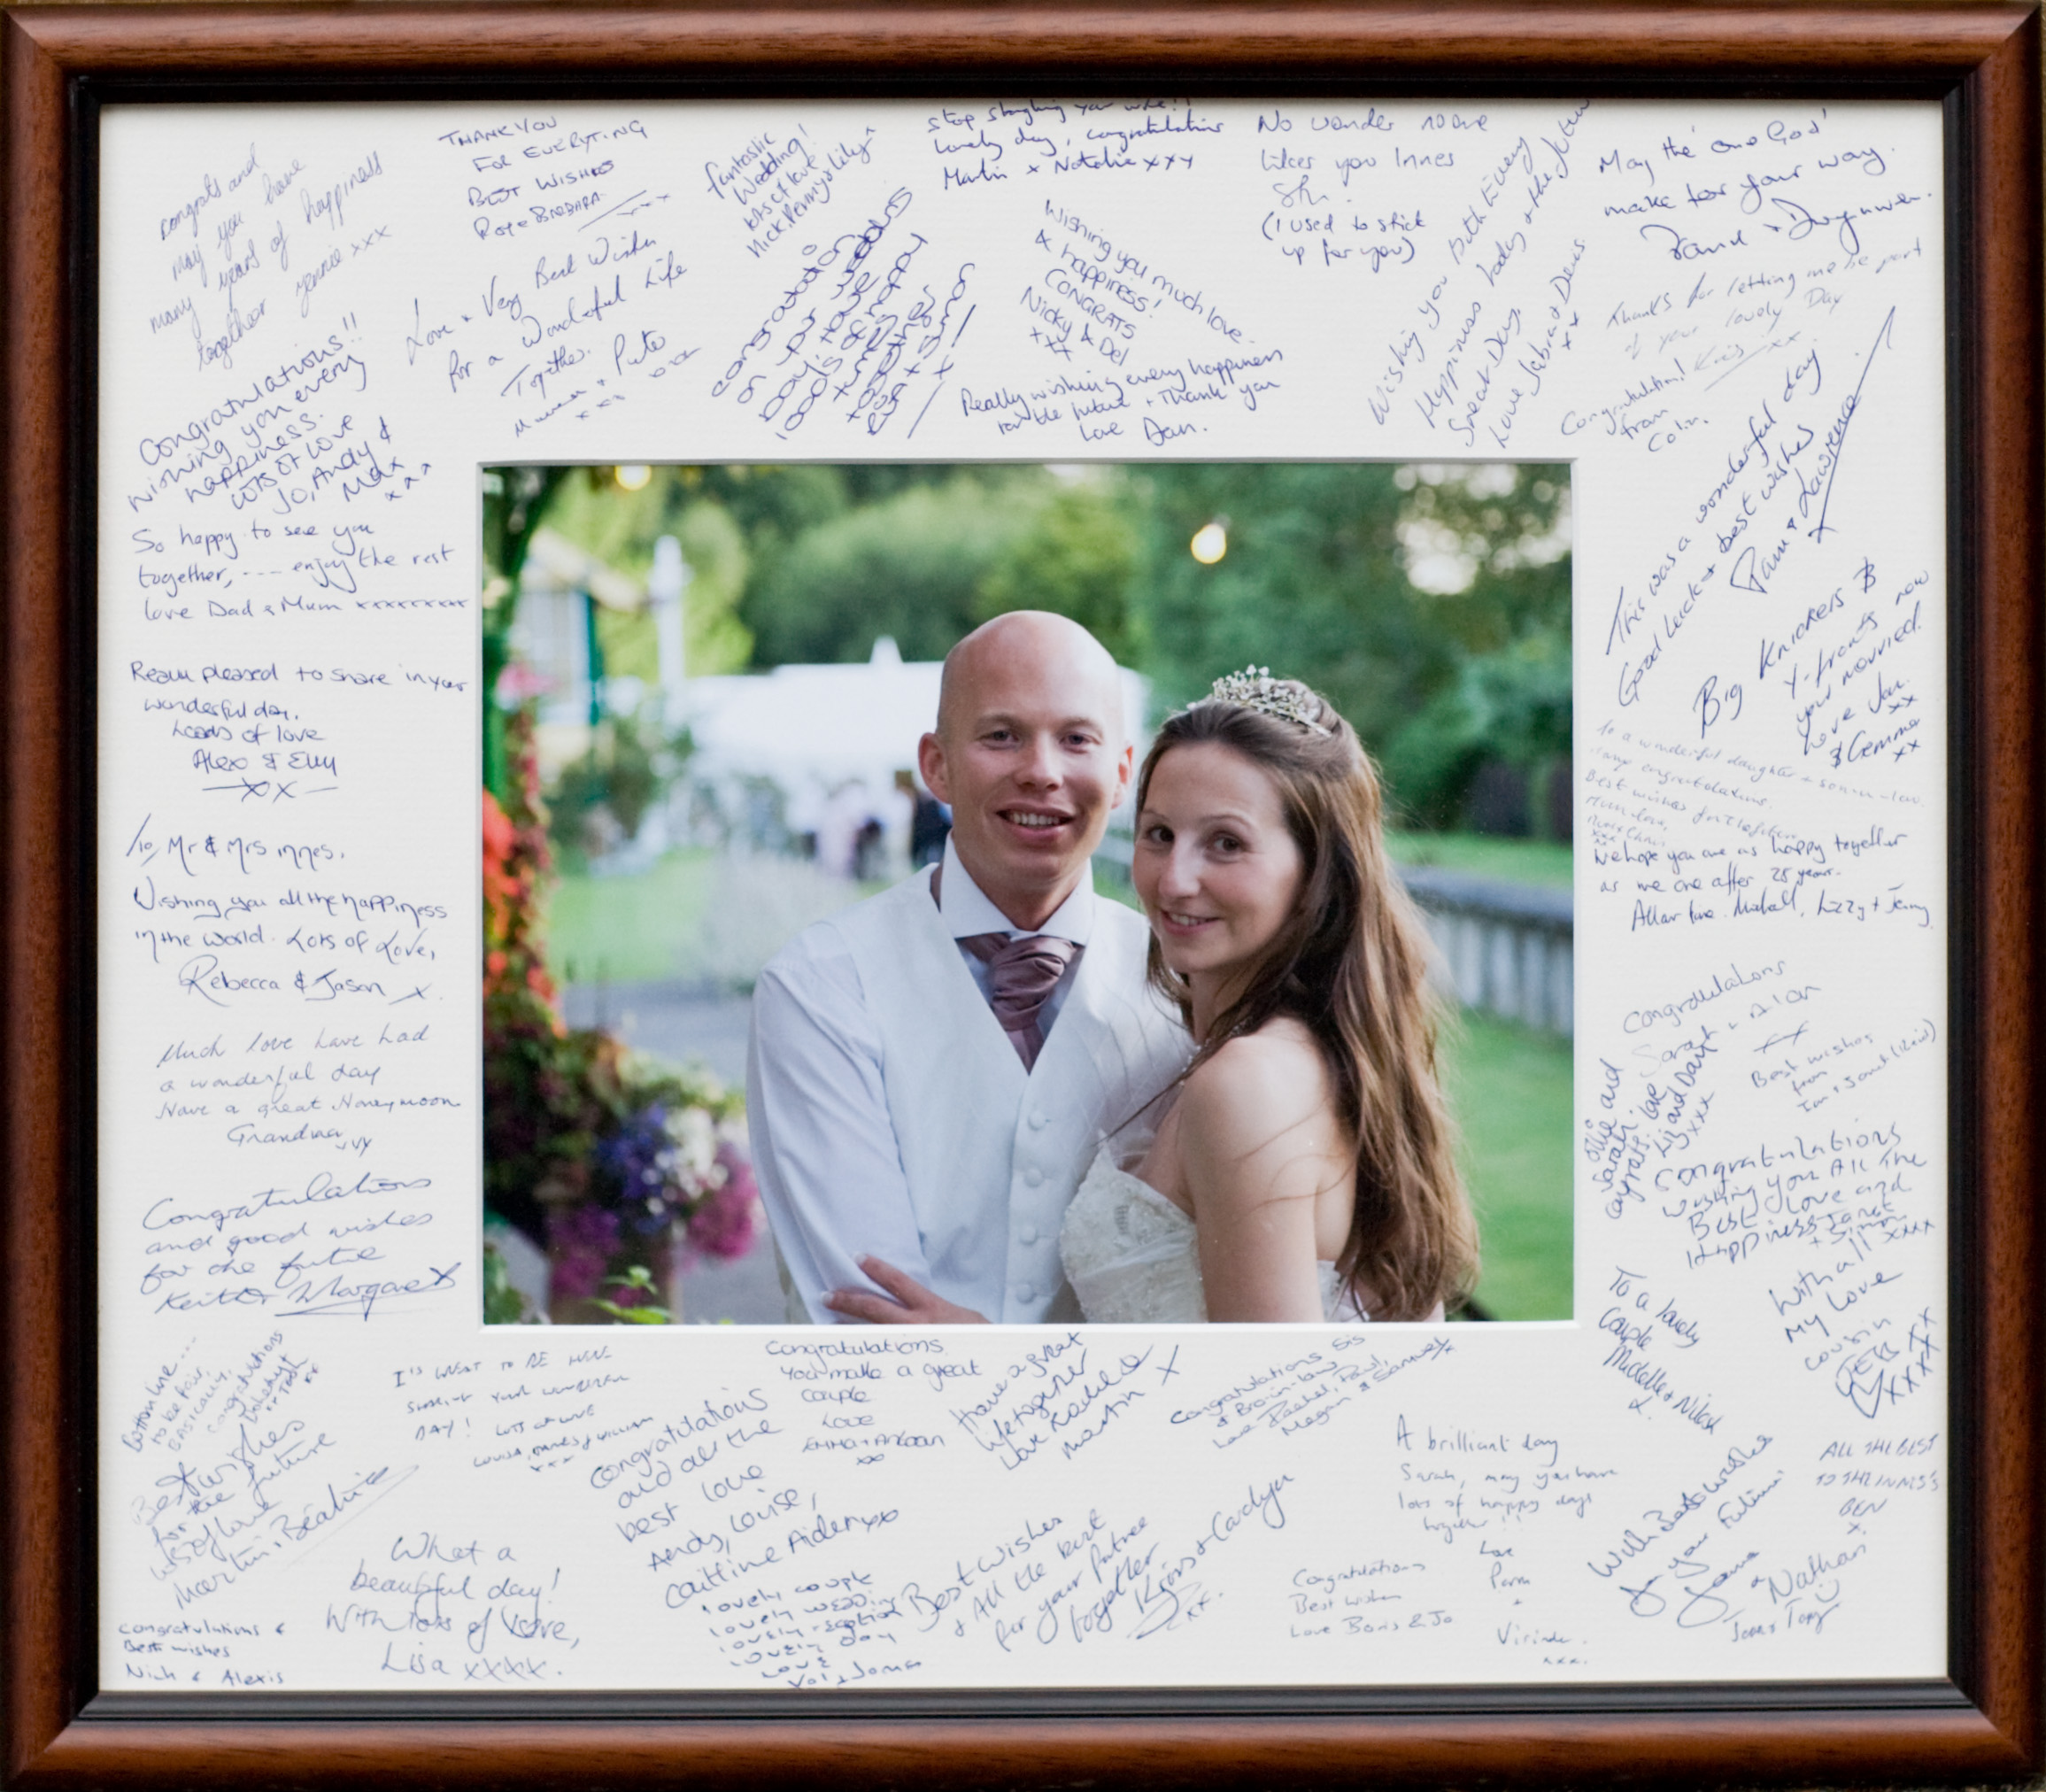 A signing mount is a great memory of your day and the people who were there to share it with you. It hangs as a wall display rather than sitting in a drawer like a guest book.